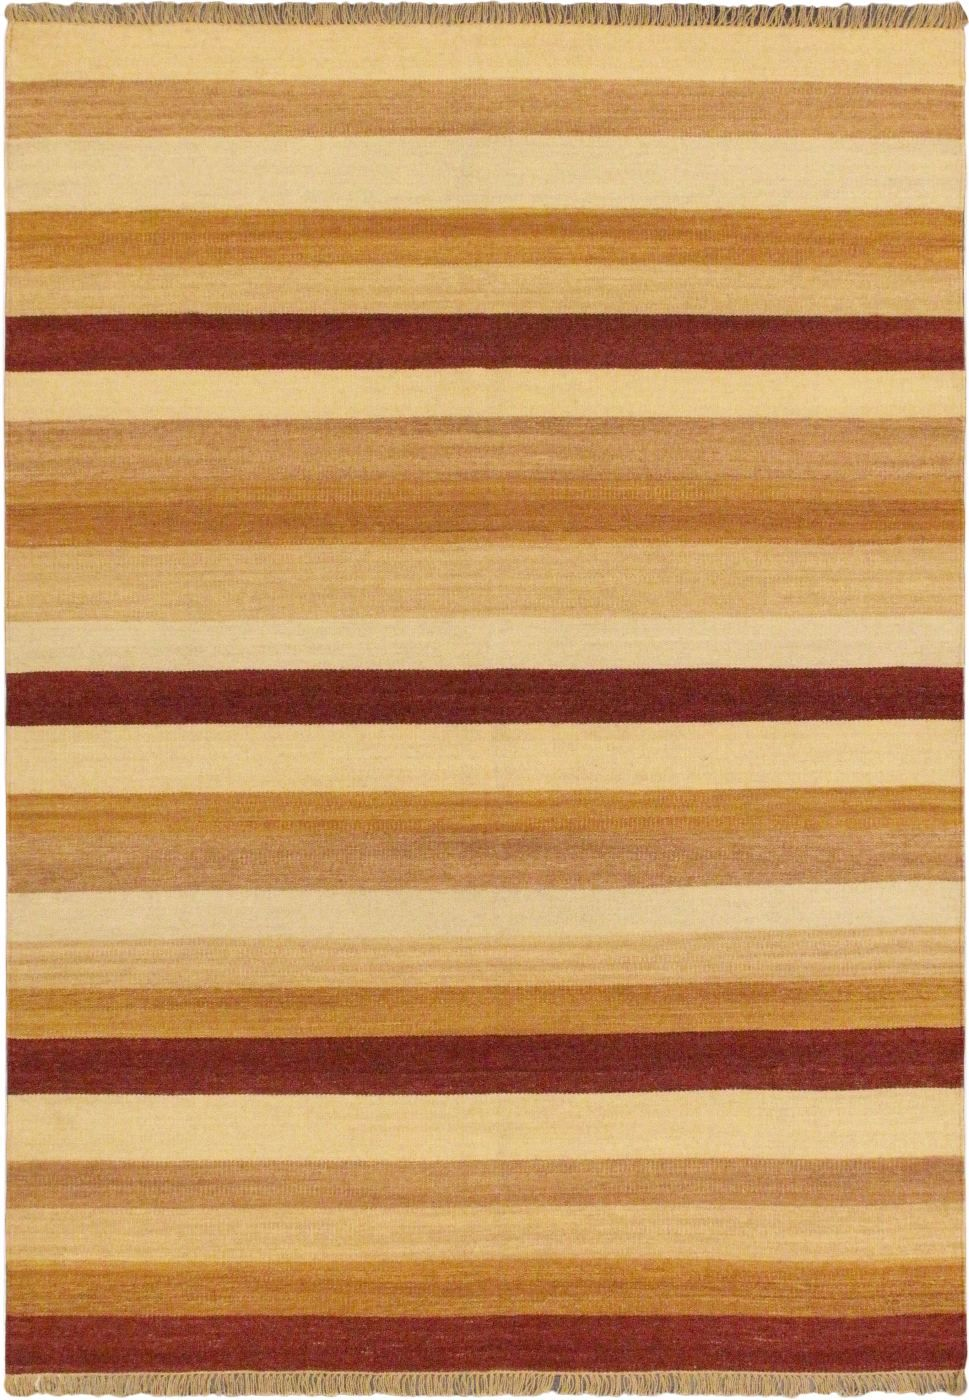 ecarpet gallery fiesta solid/striped area rug collection